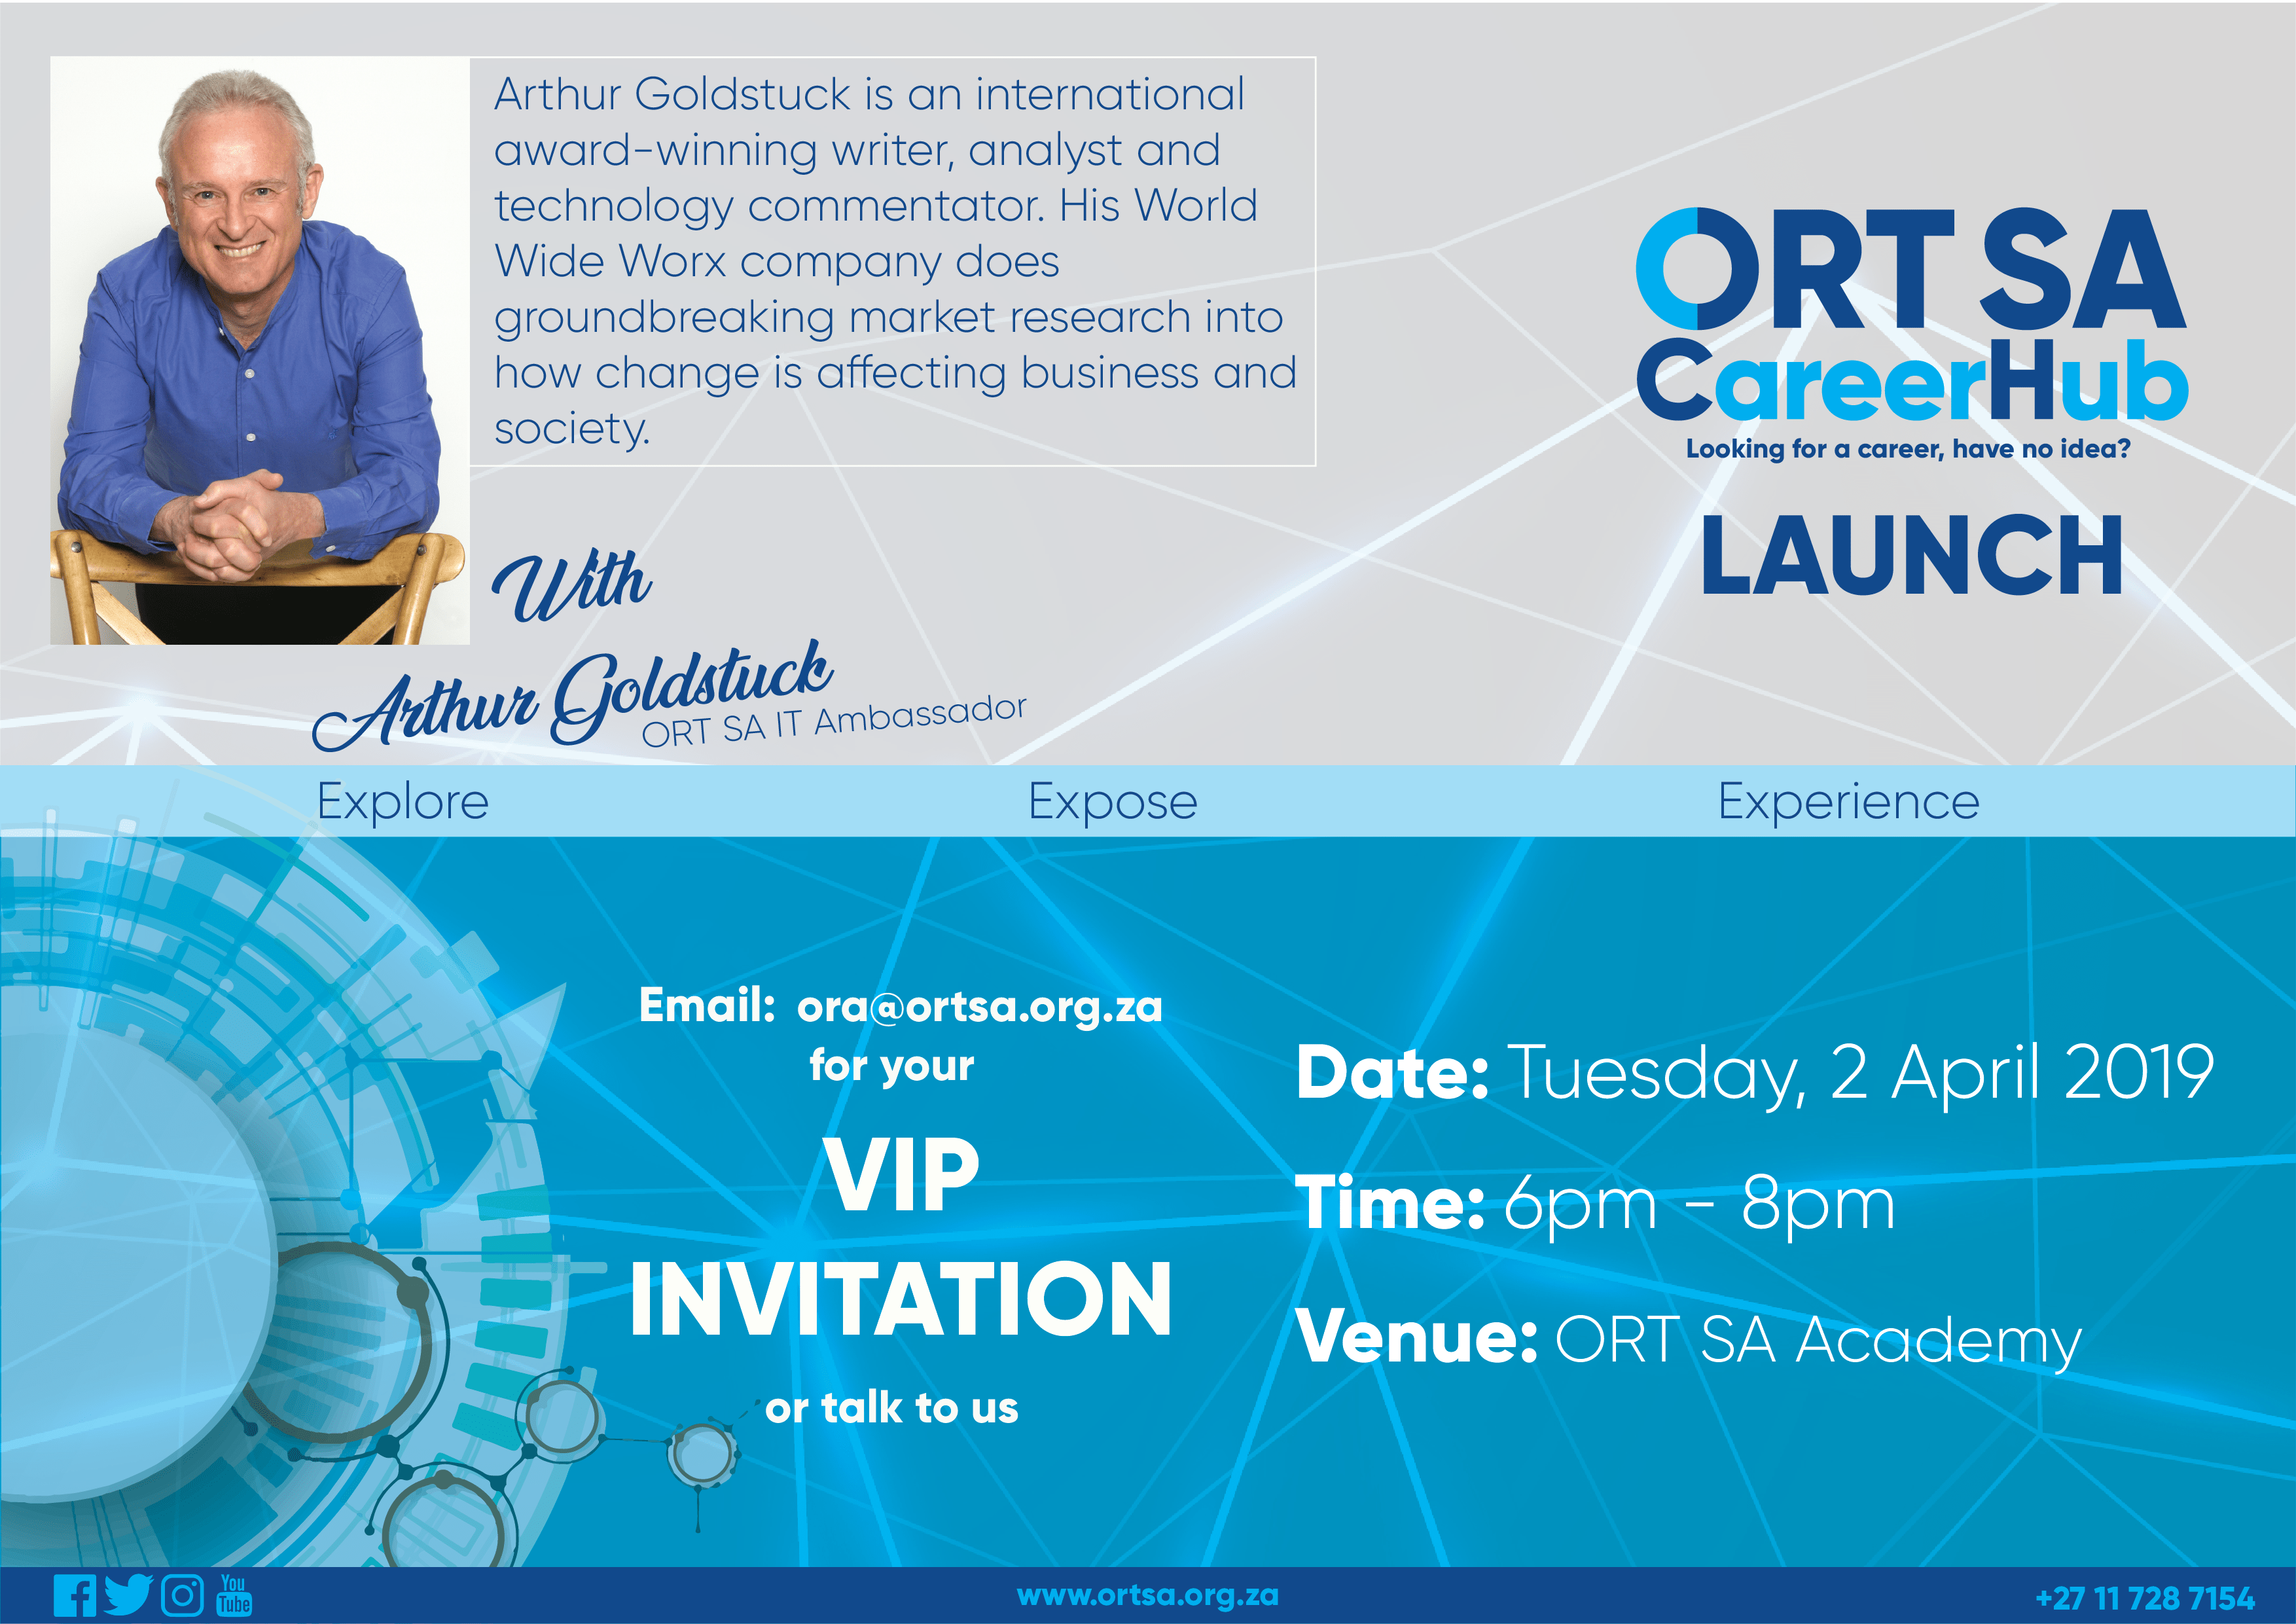 LOOKING FOR A CAREER & HAVE NO IDEA? ORT SA CareerHub LAUNCH